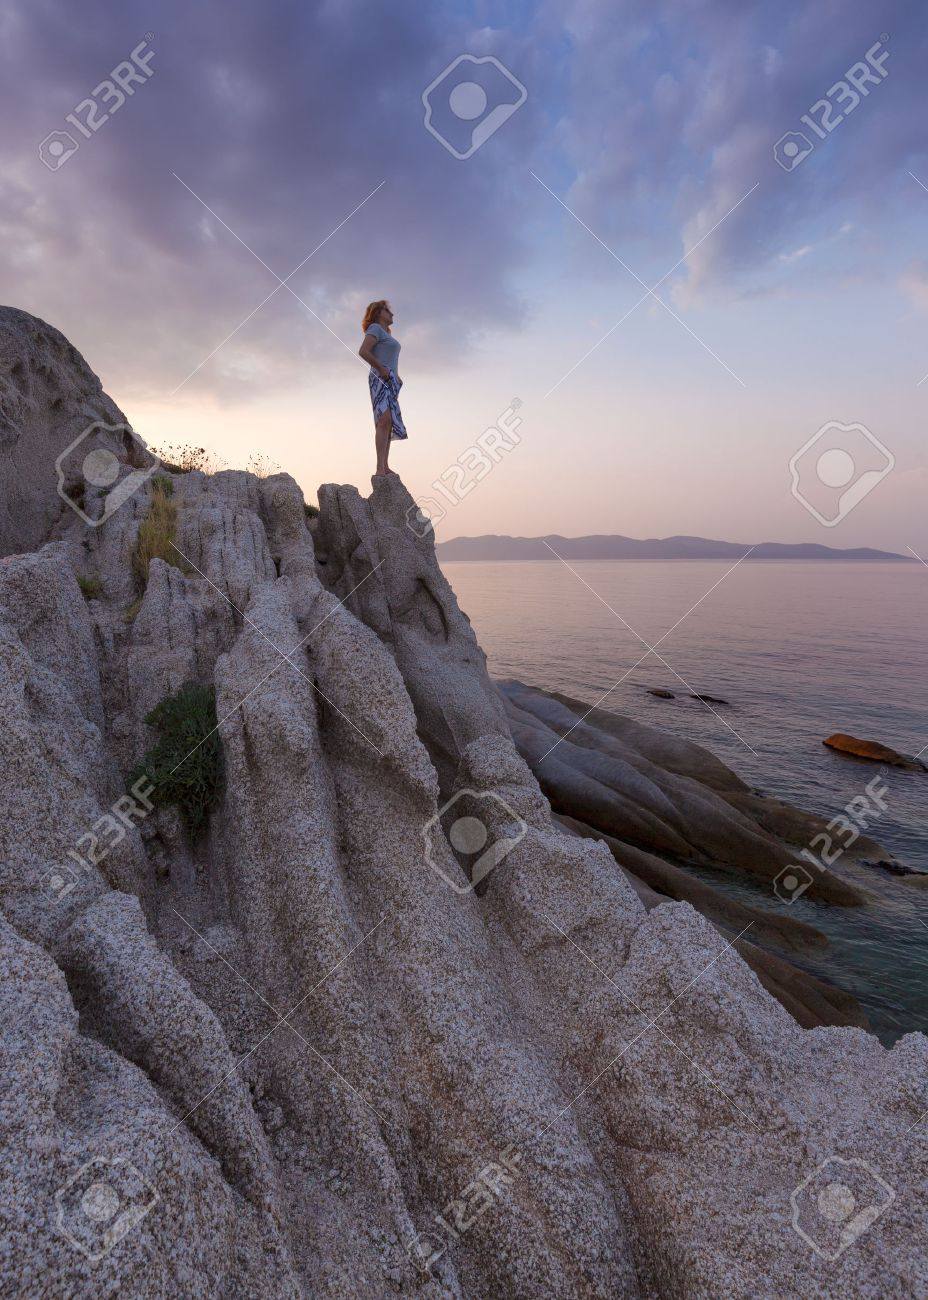 Lone woman standing on an edge of cliff and watching the setting sun from the shore with strange rocks. Coastline of Aegean Sea, Greece. - 60945324